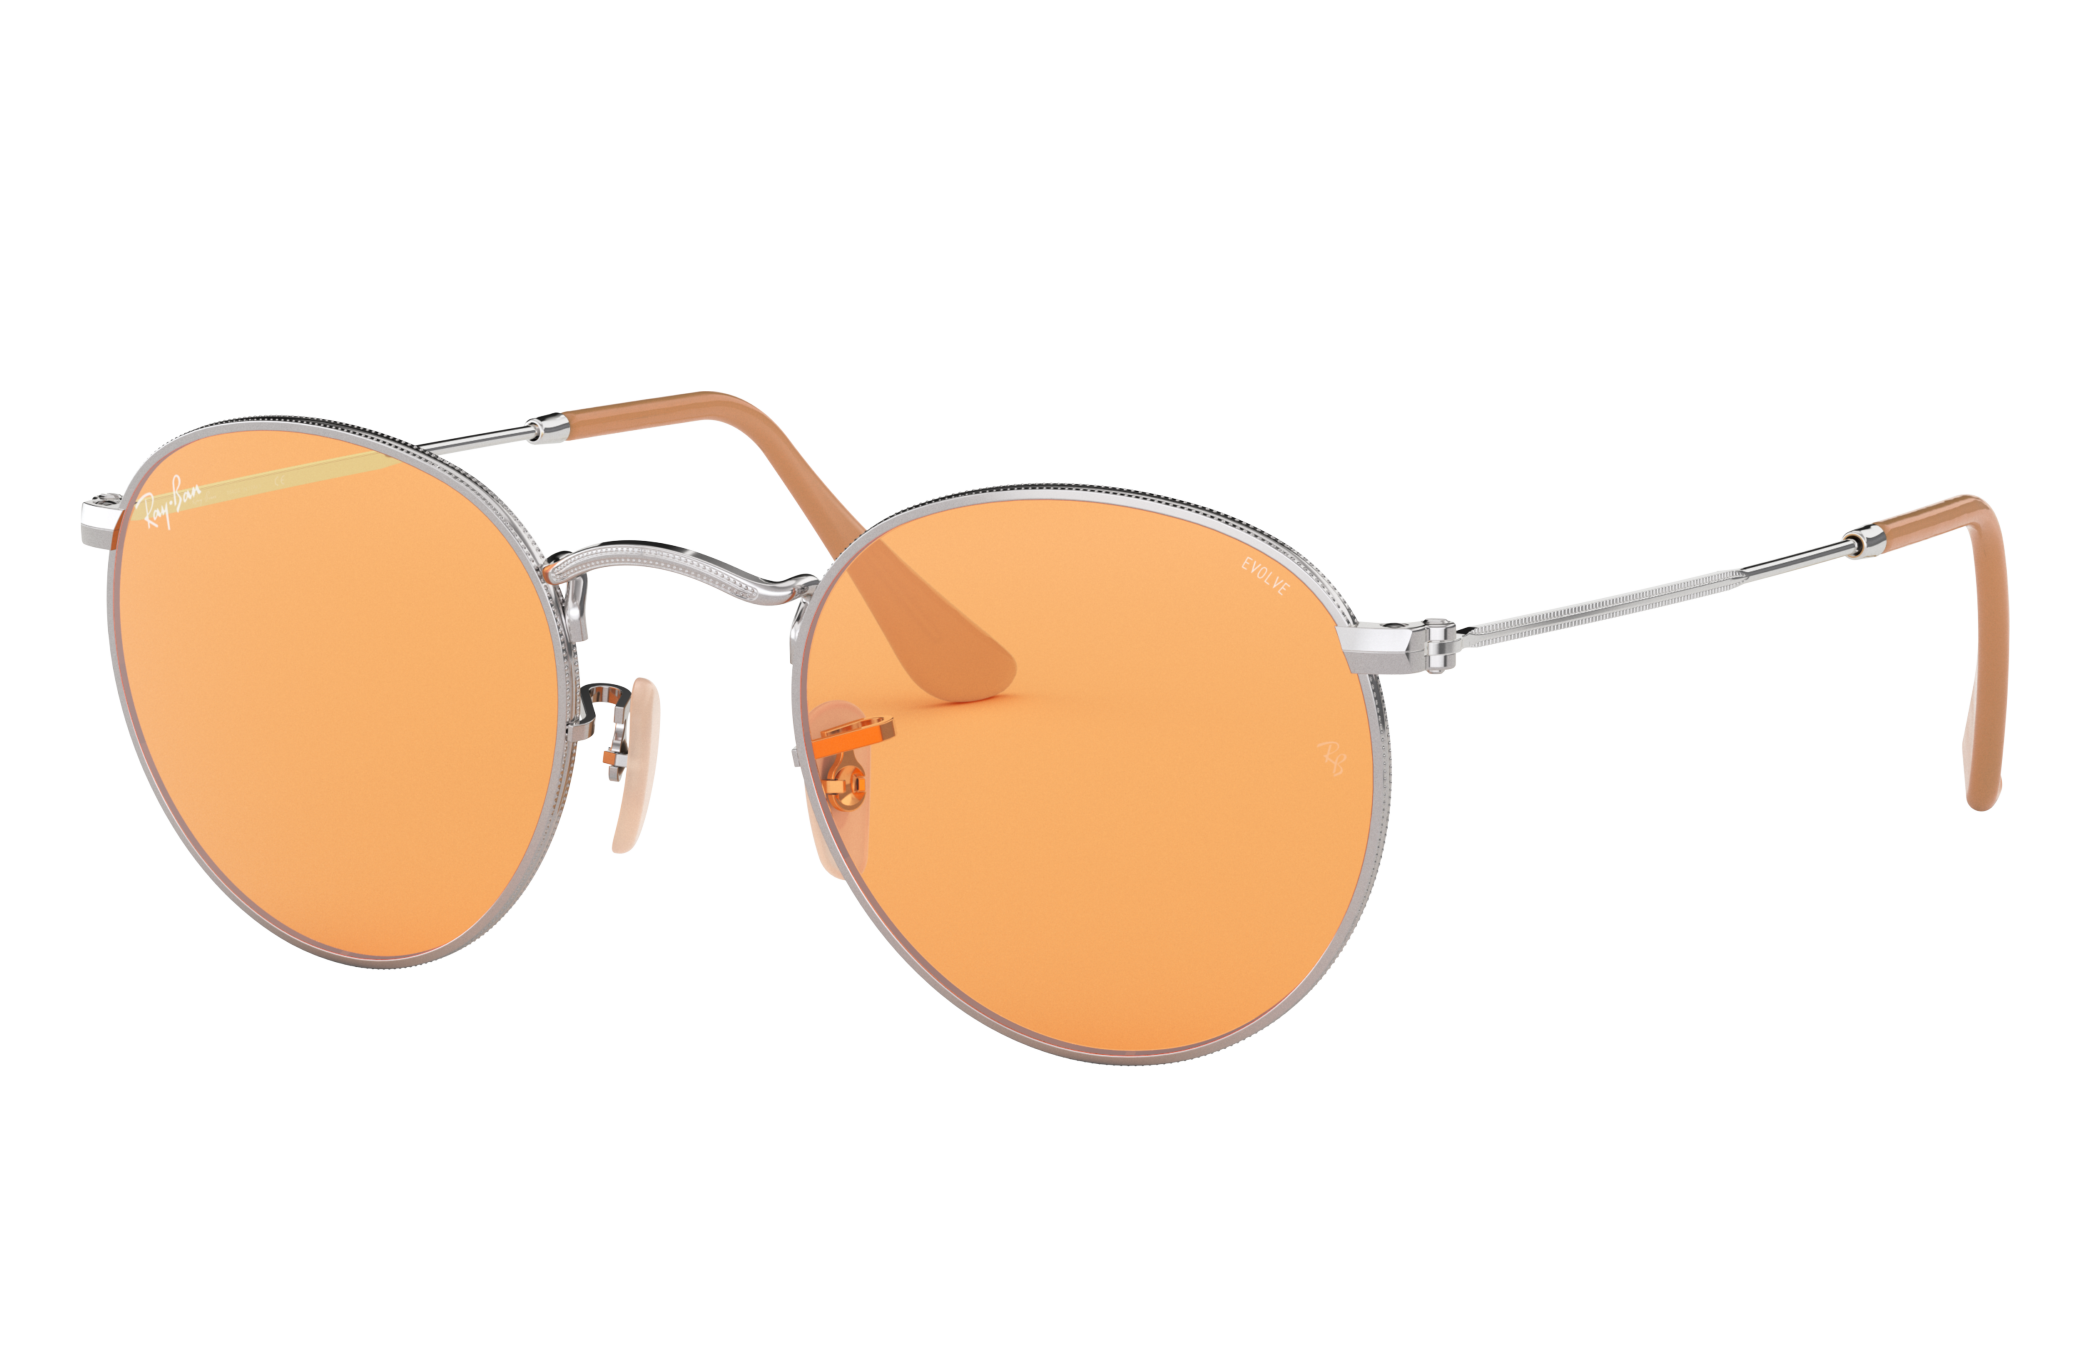 Ray-Ban Round Washed Evolve Silver, Orange Lenses - RB3447